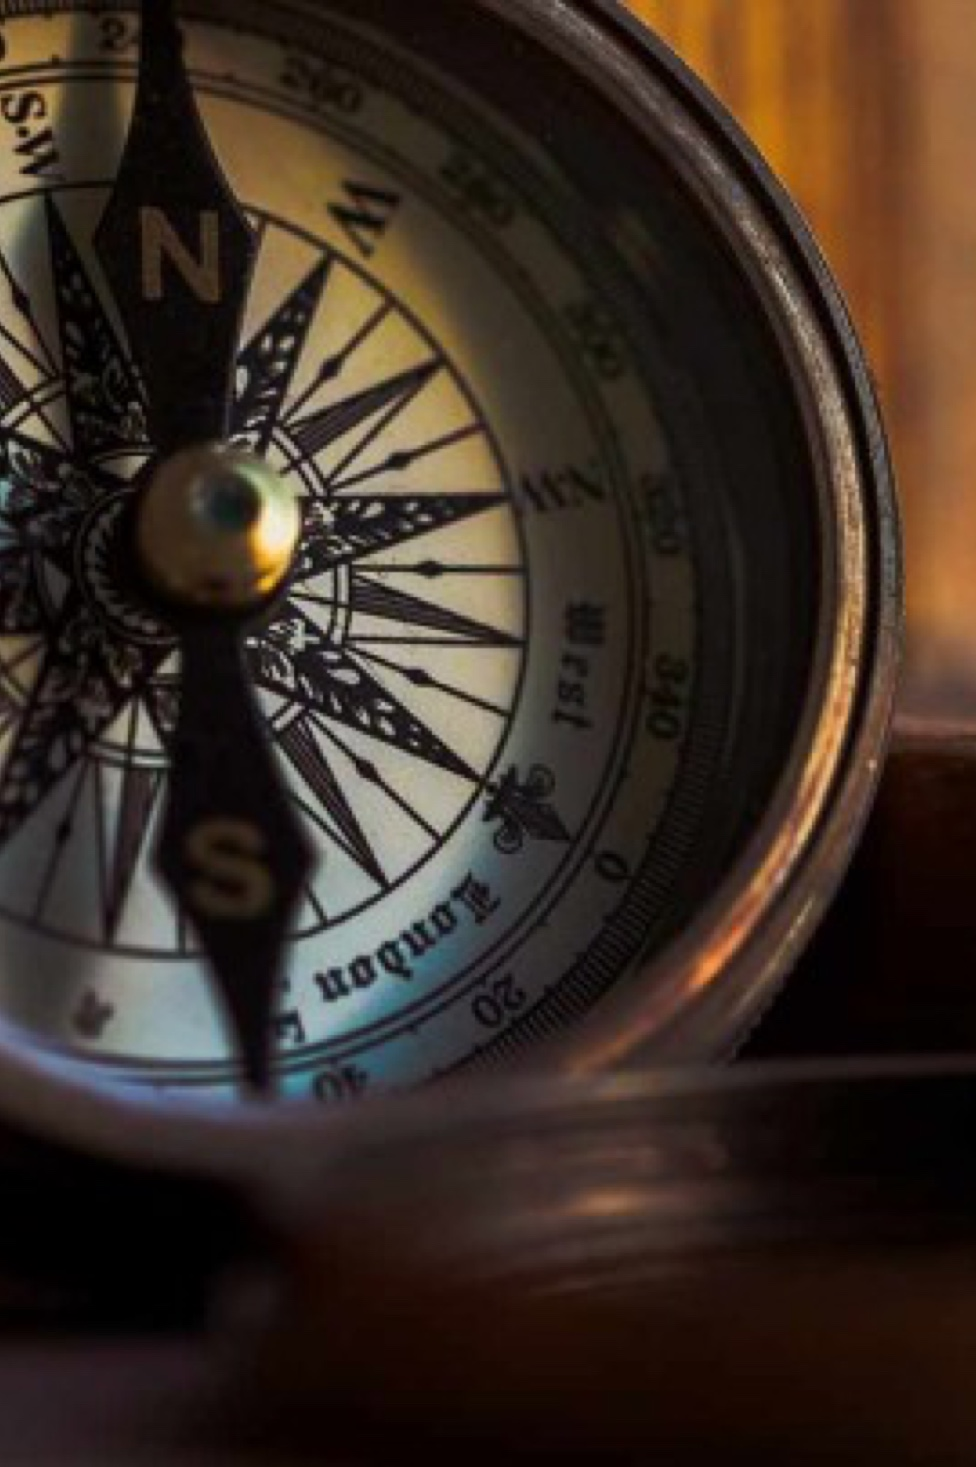 photography of a compass